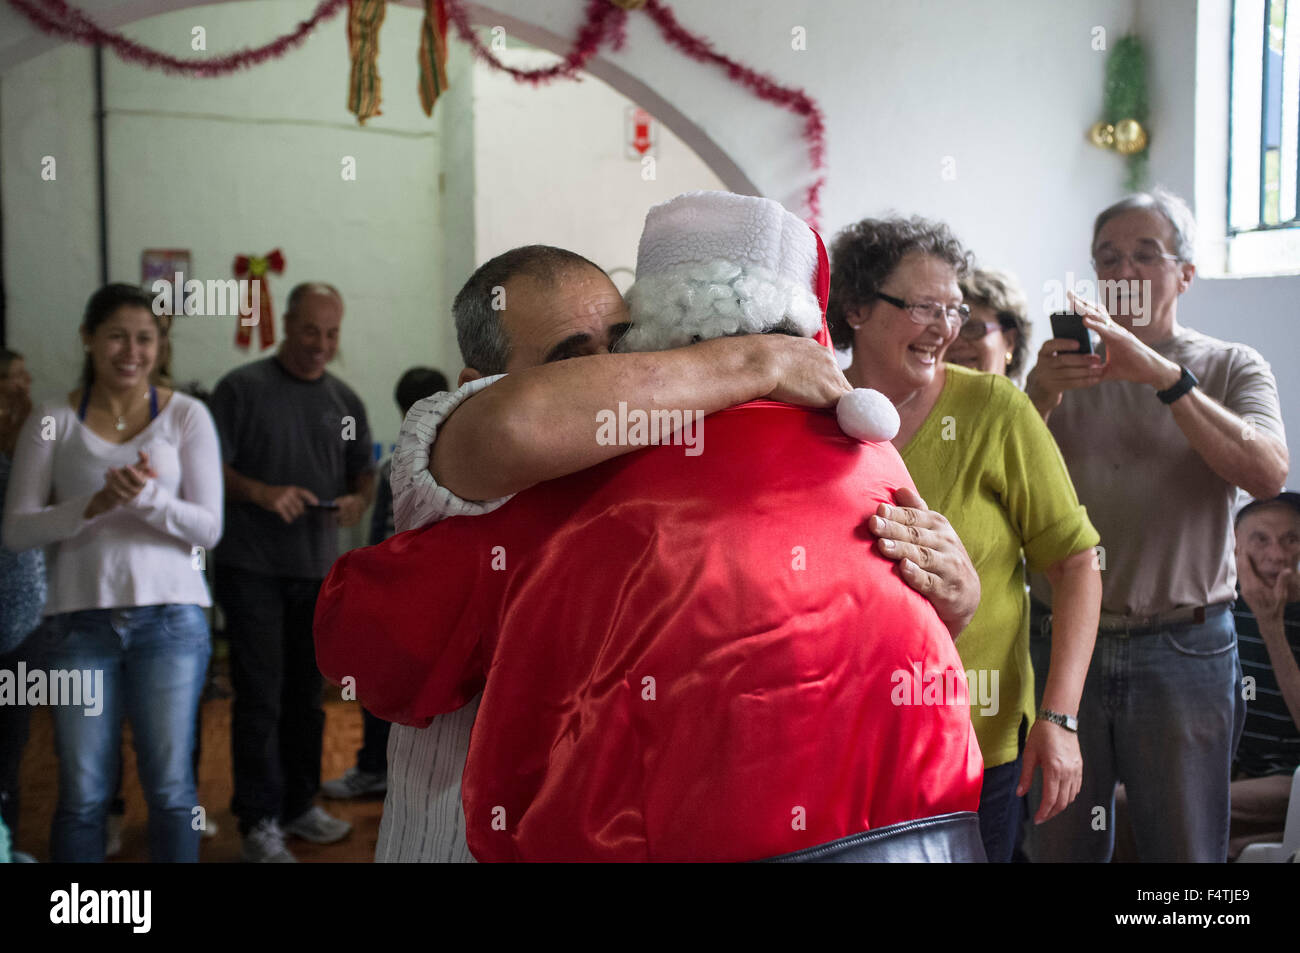 Man Dresses Up As Santa Claus For Visiting Nursing Home And Stock